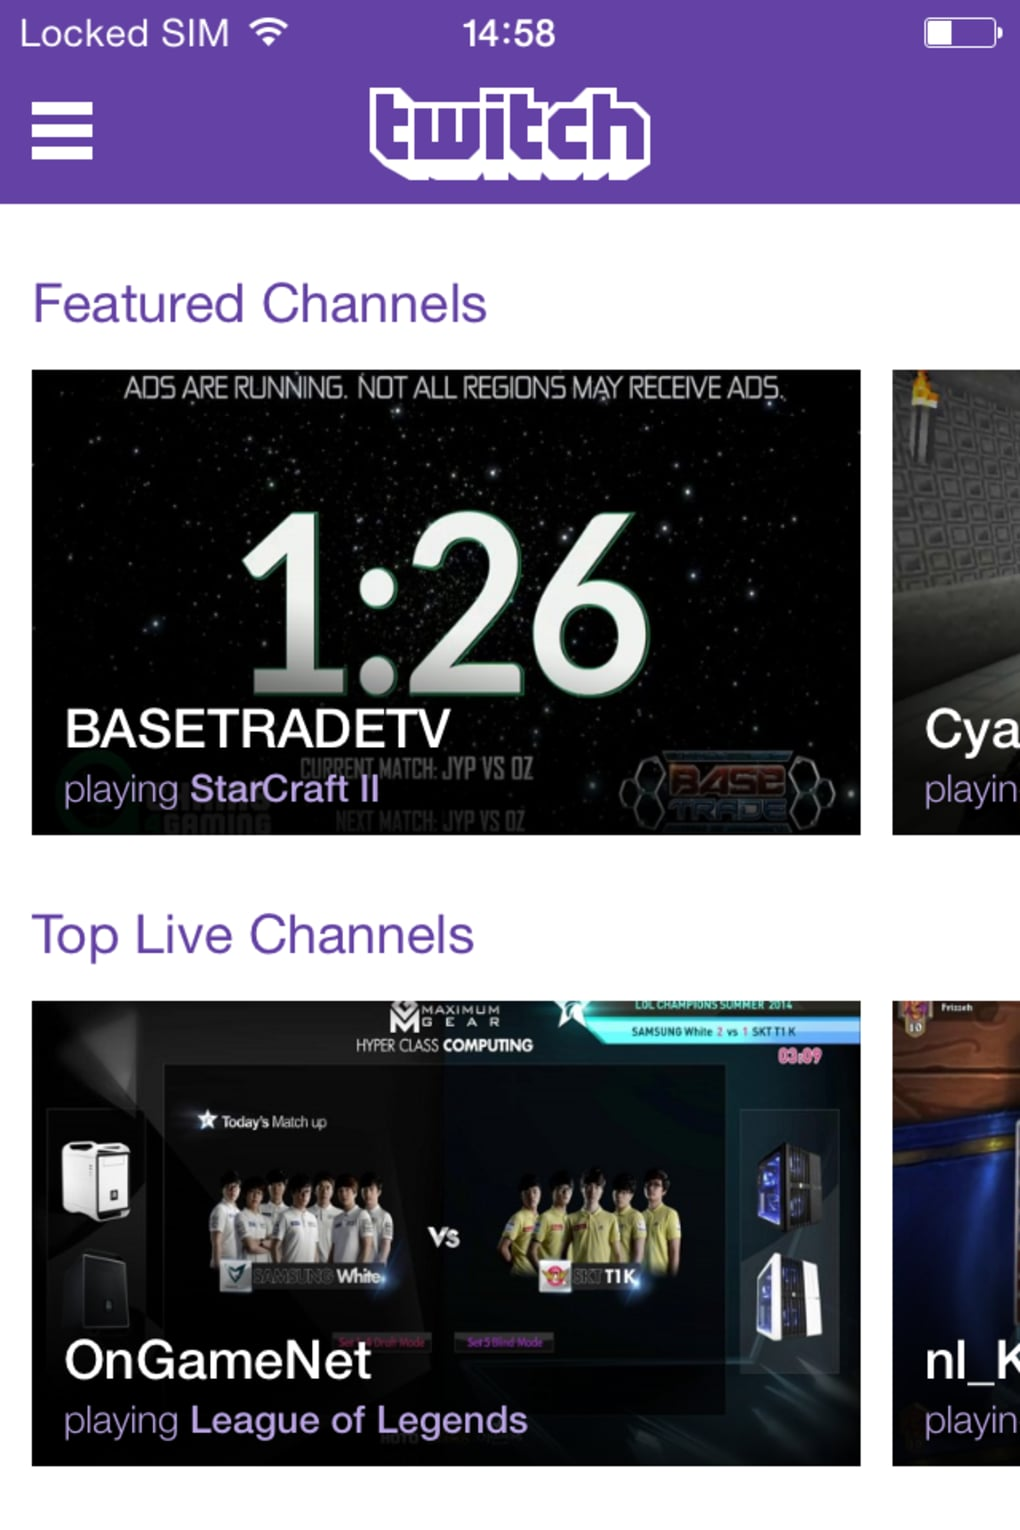 how to download twitch clips on iphone